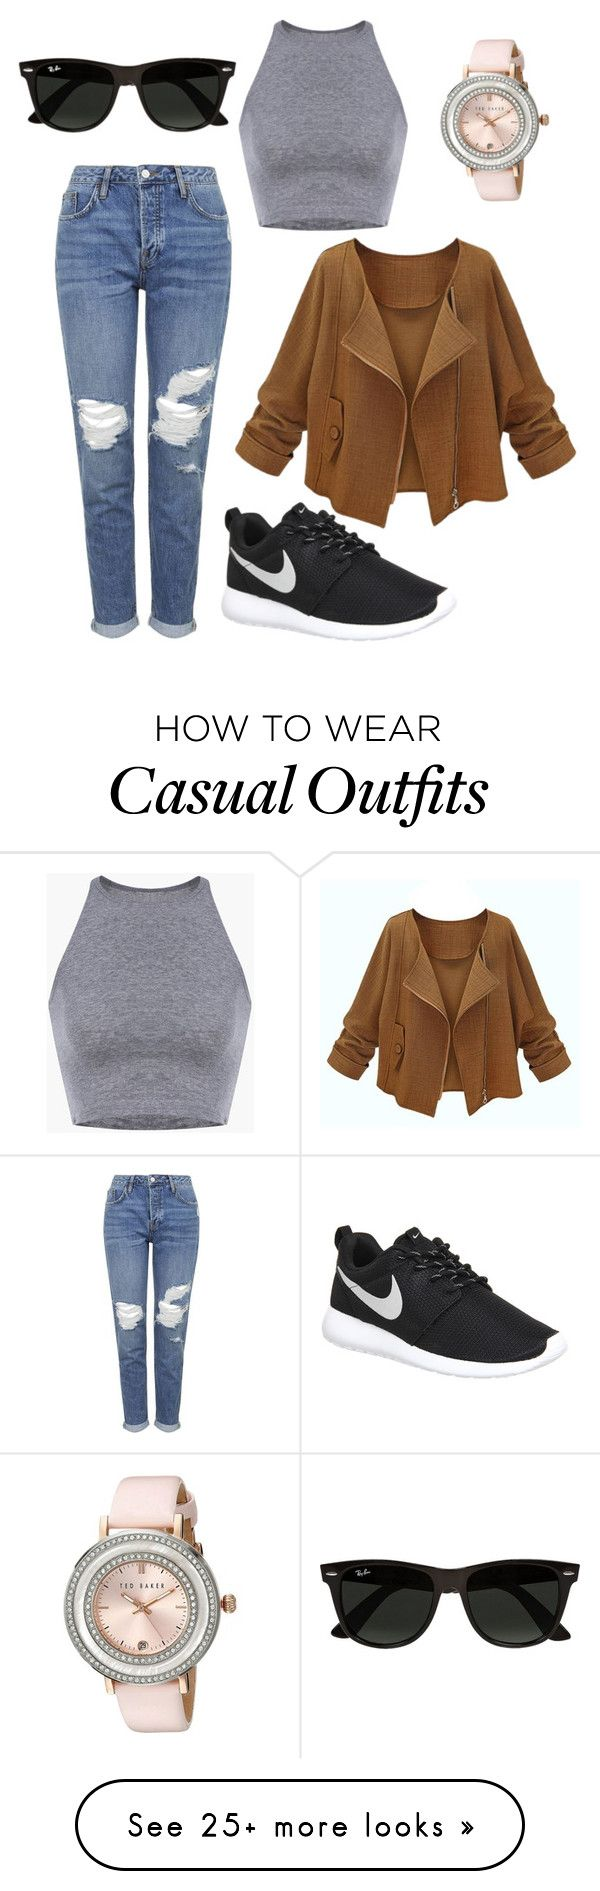 """casual"" by mariellvolter on Polyvore featuring NIKE, Topshop, Ray-Ban, Ted Baker, women's clothing, women's fashion, women, female, woman and misses"